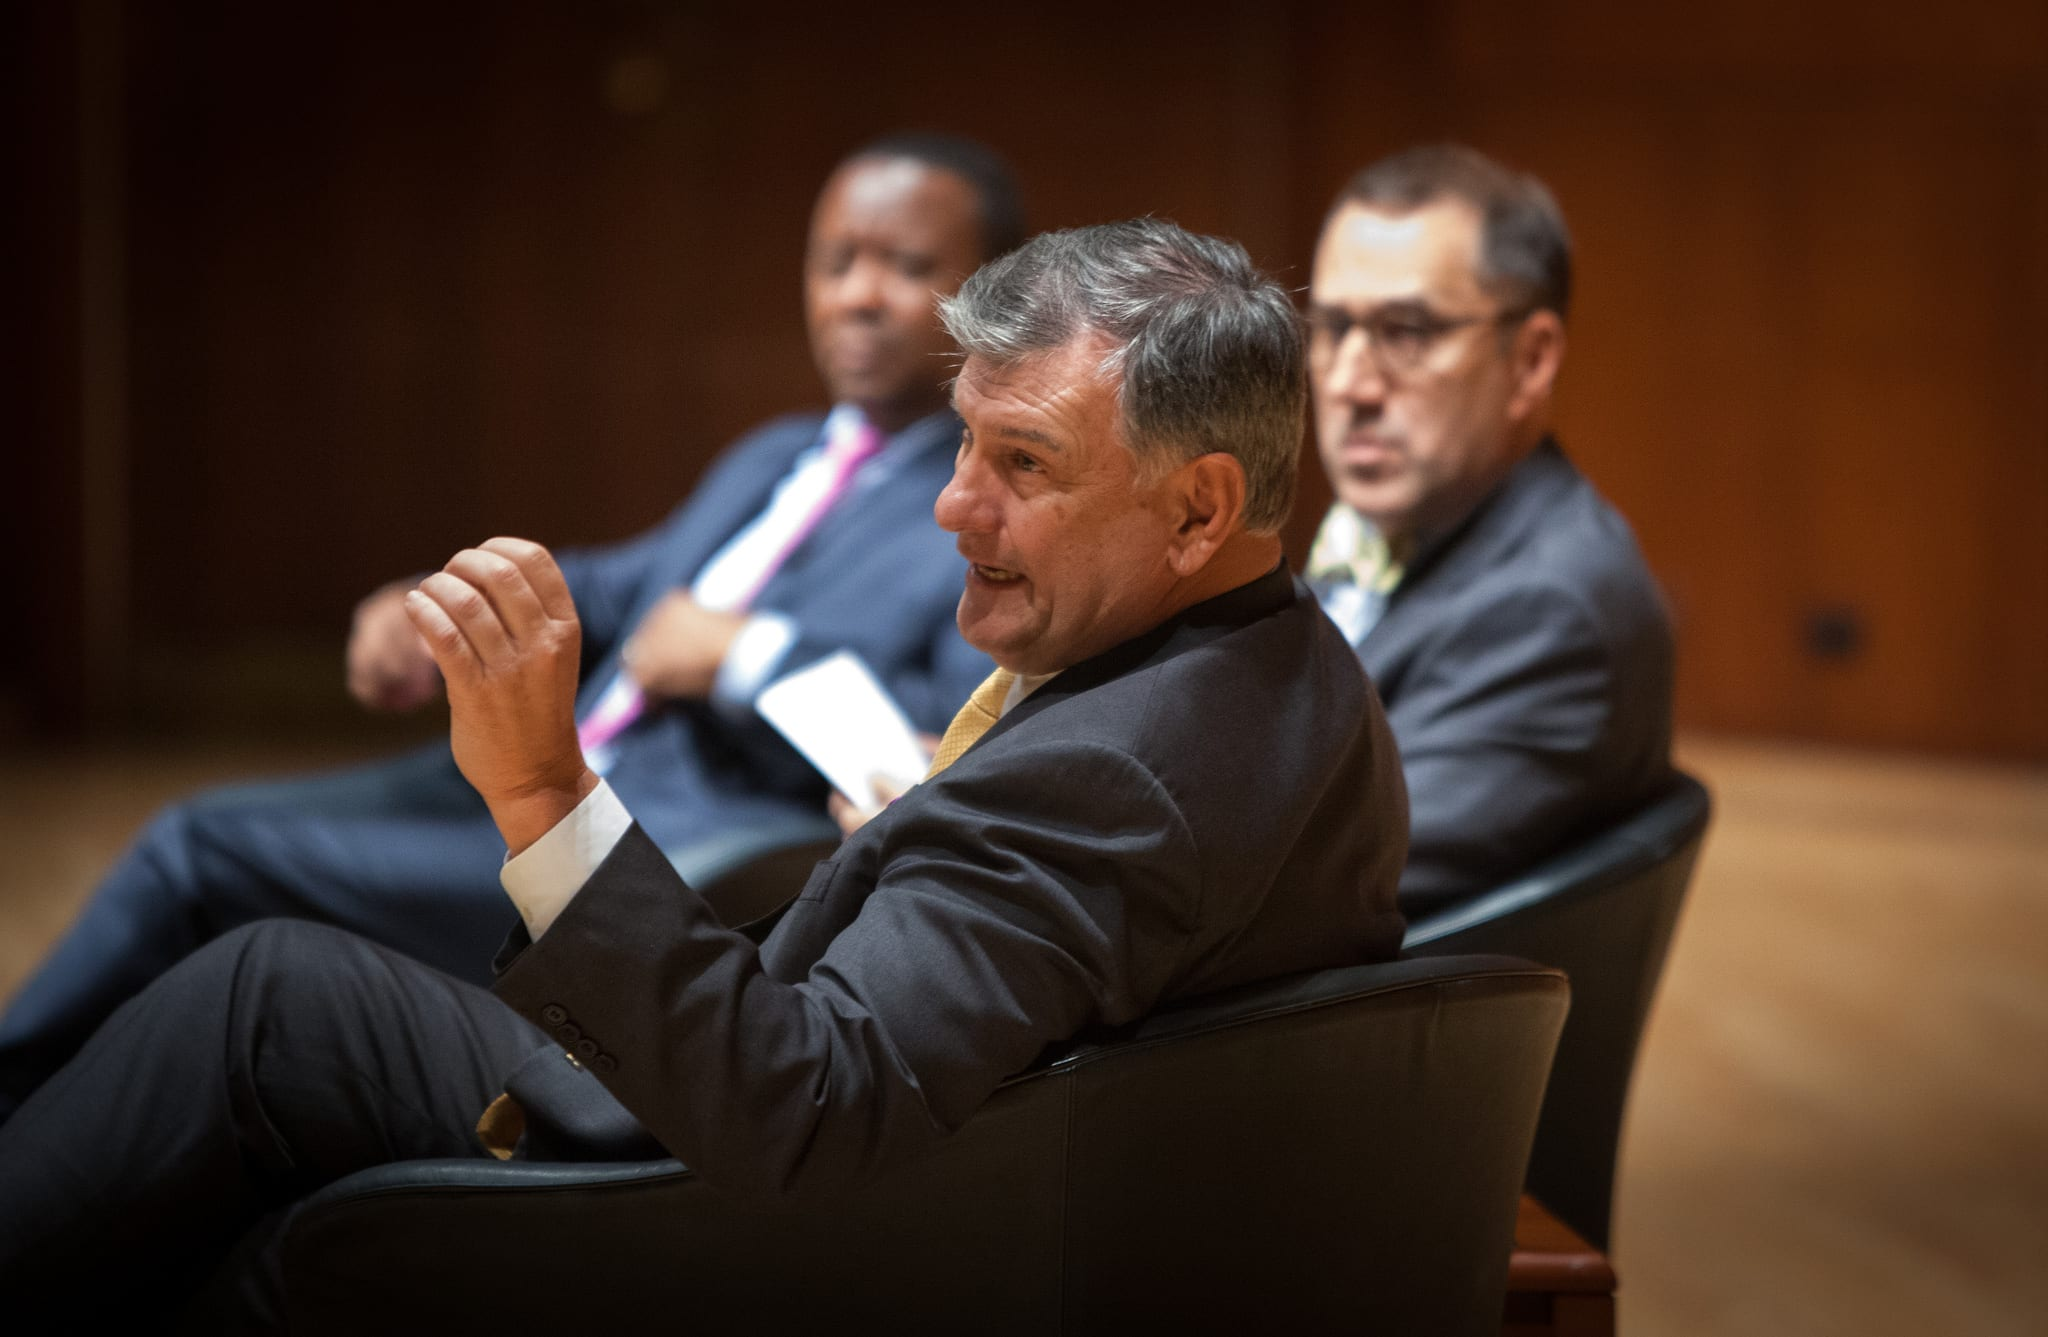 Dallas Mayor Mike Rawlings at the 17th annual Rosine Smith Sammons Lecture in Media Ethics